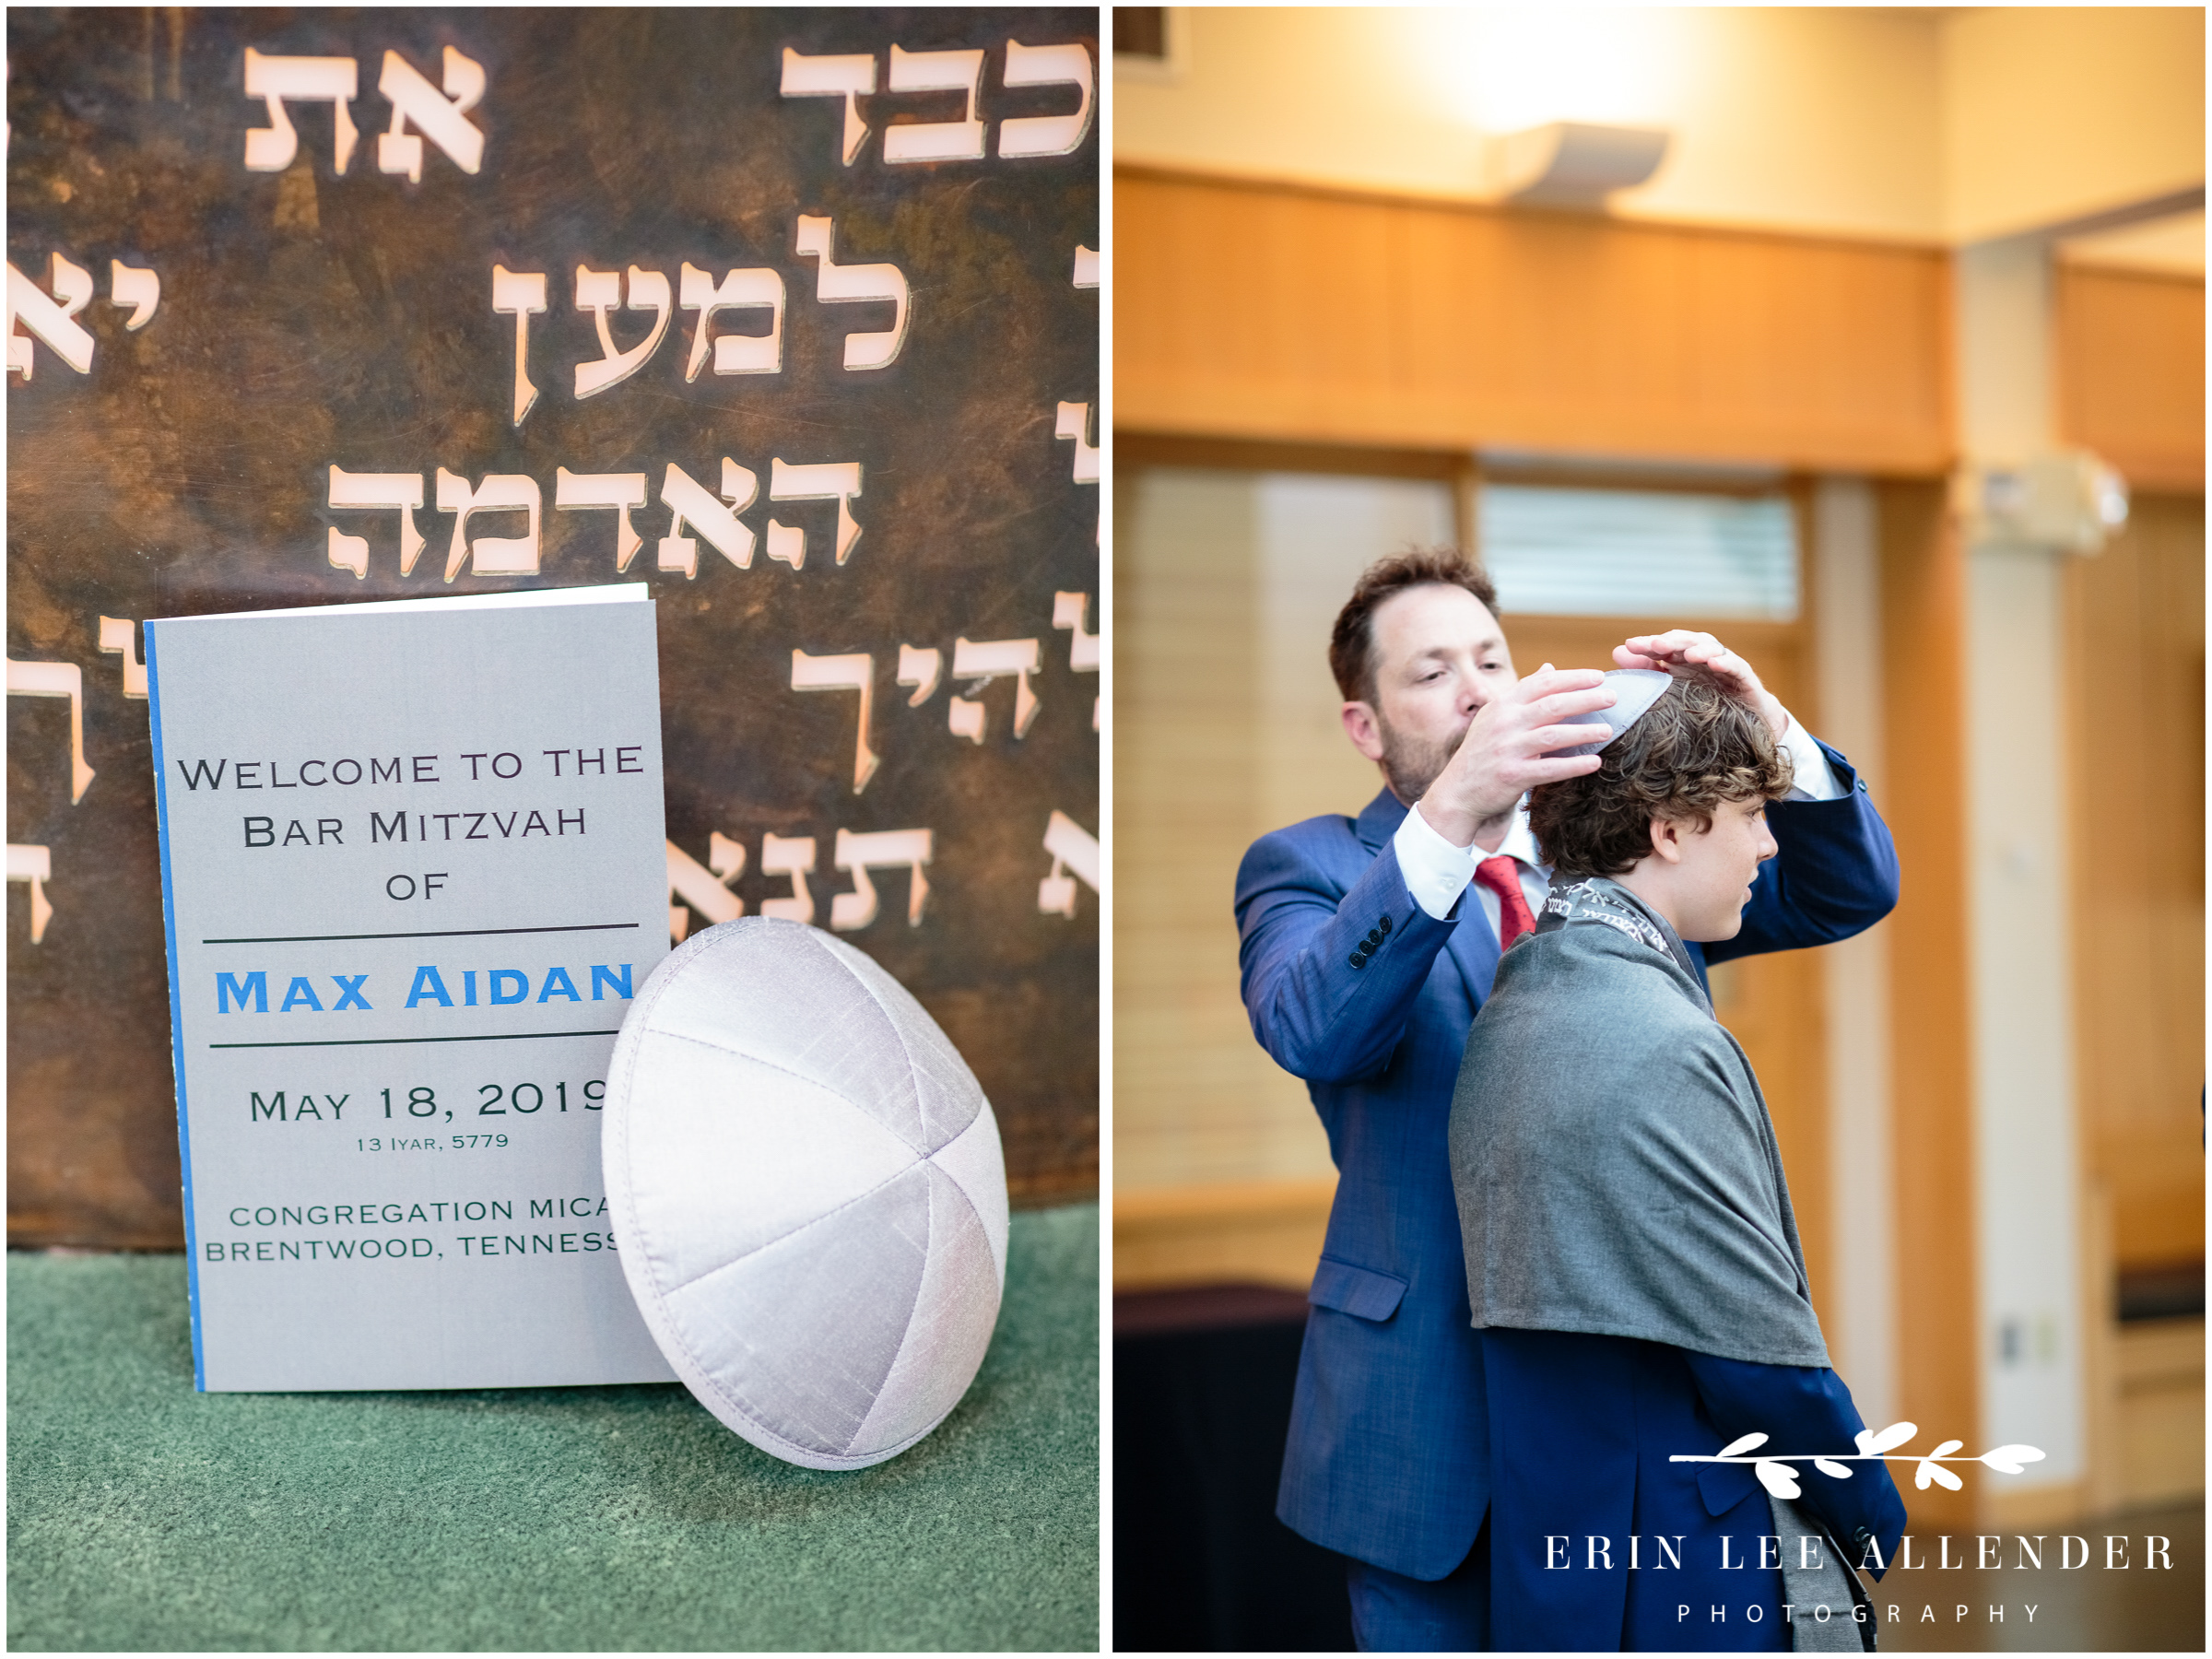 Bar-mitzvah- program